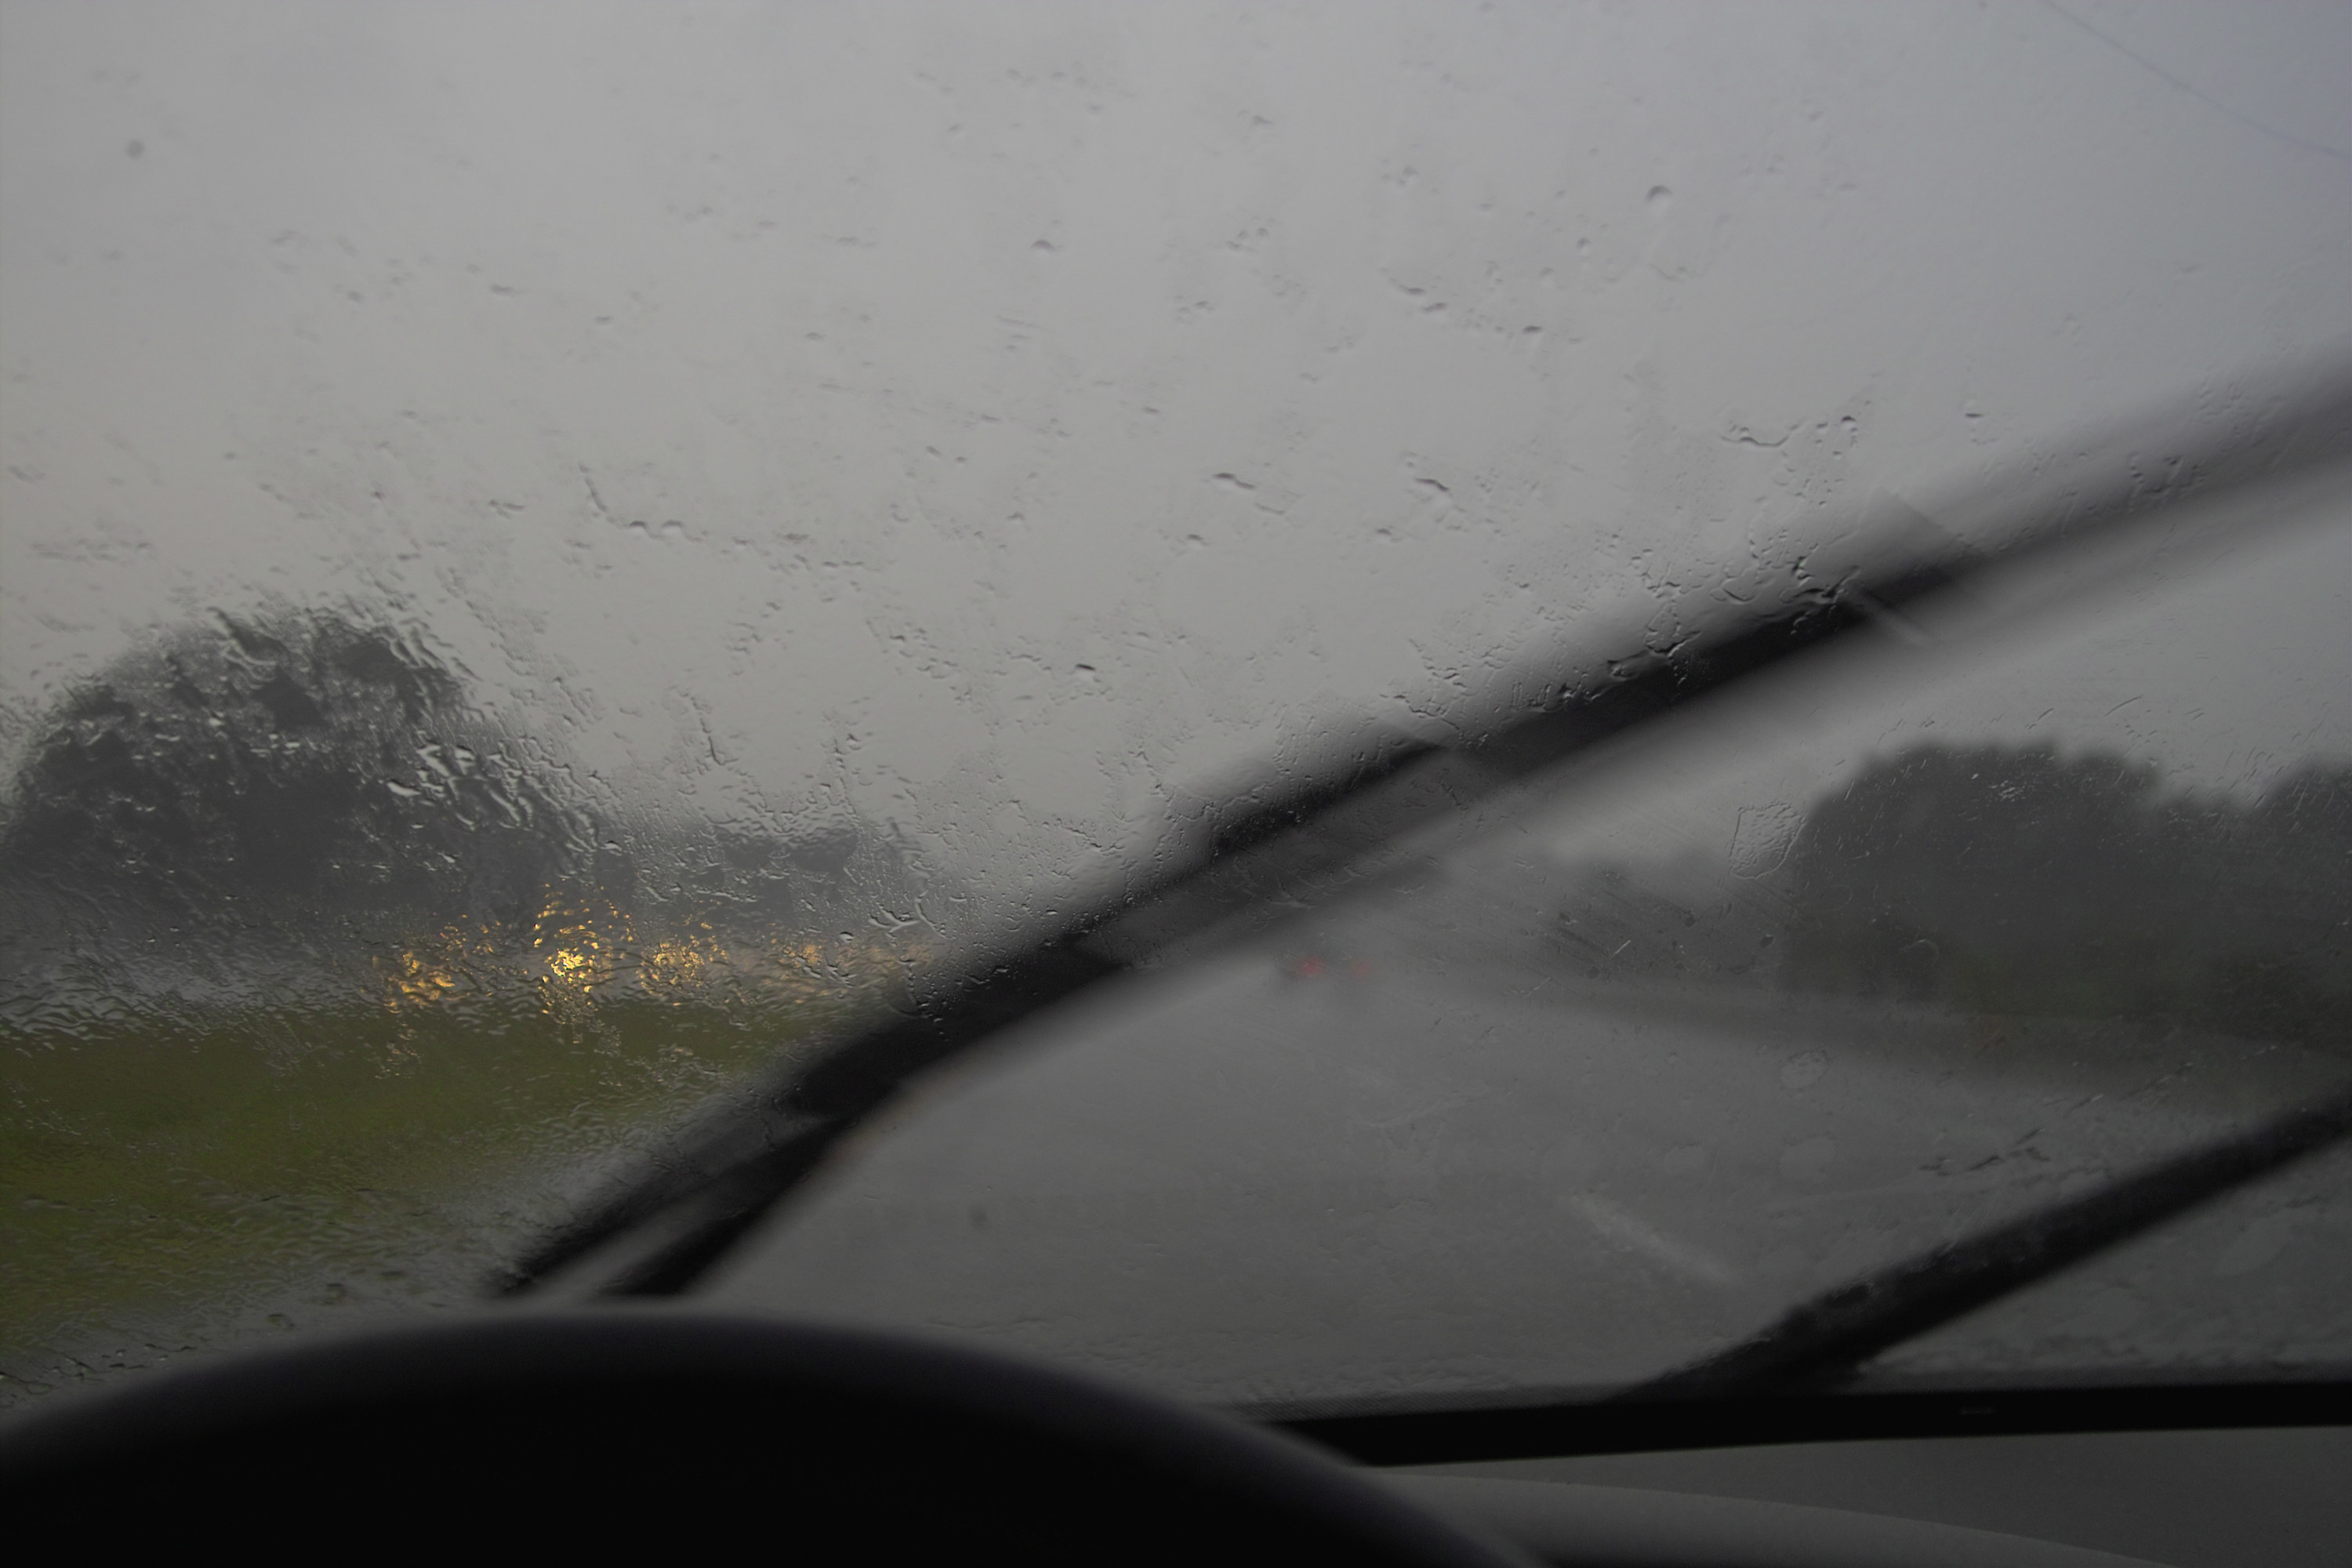 A rainy view of a highway